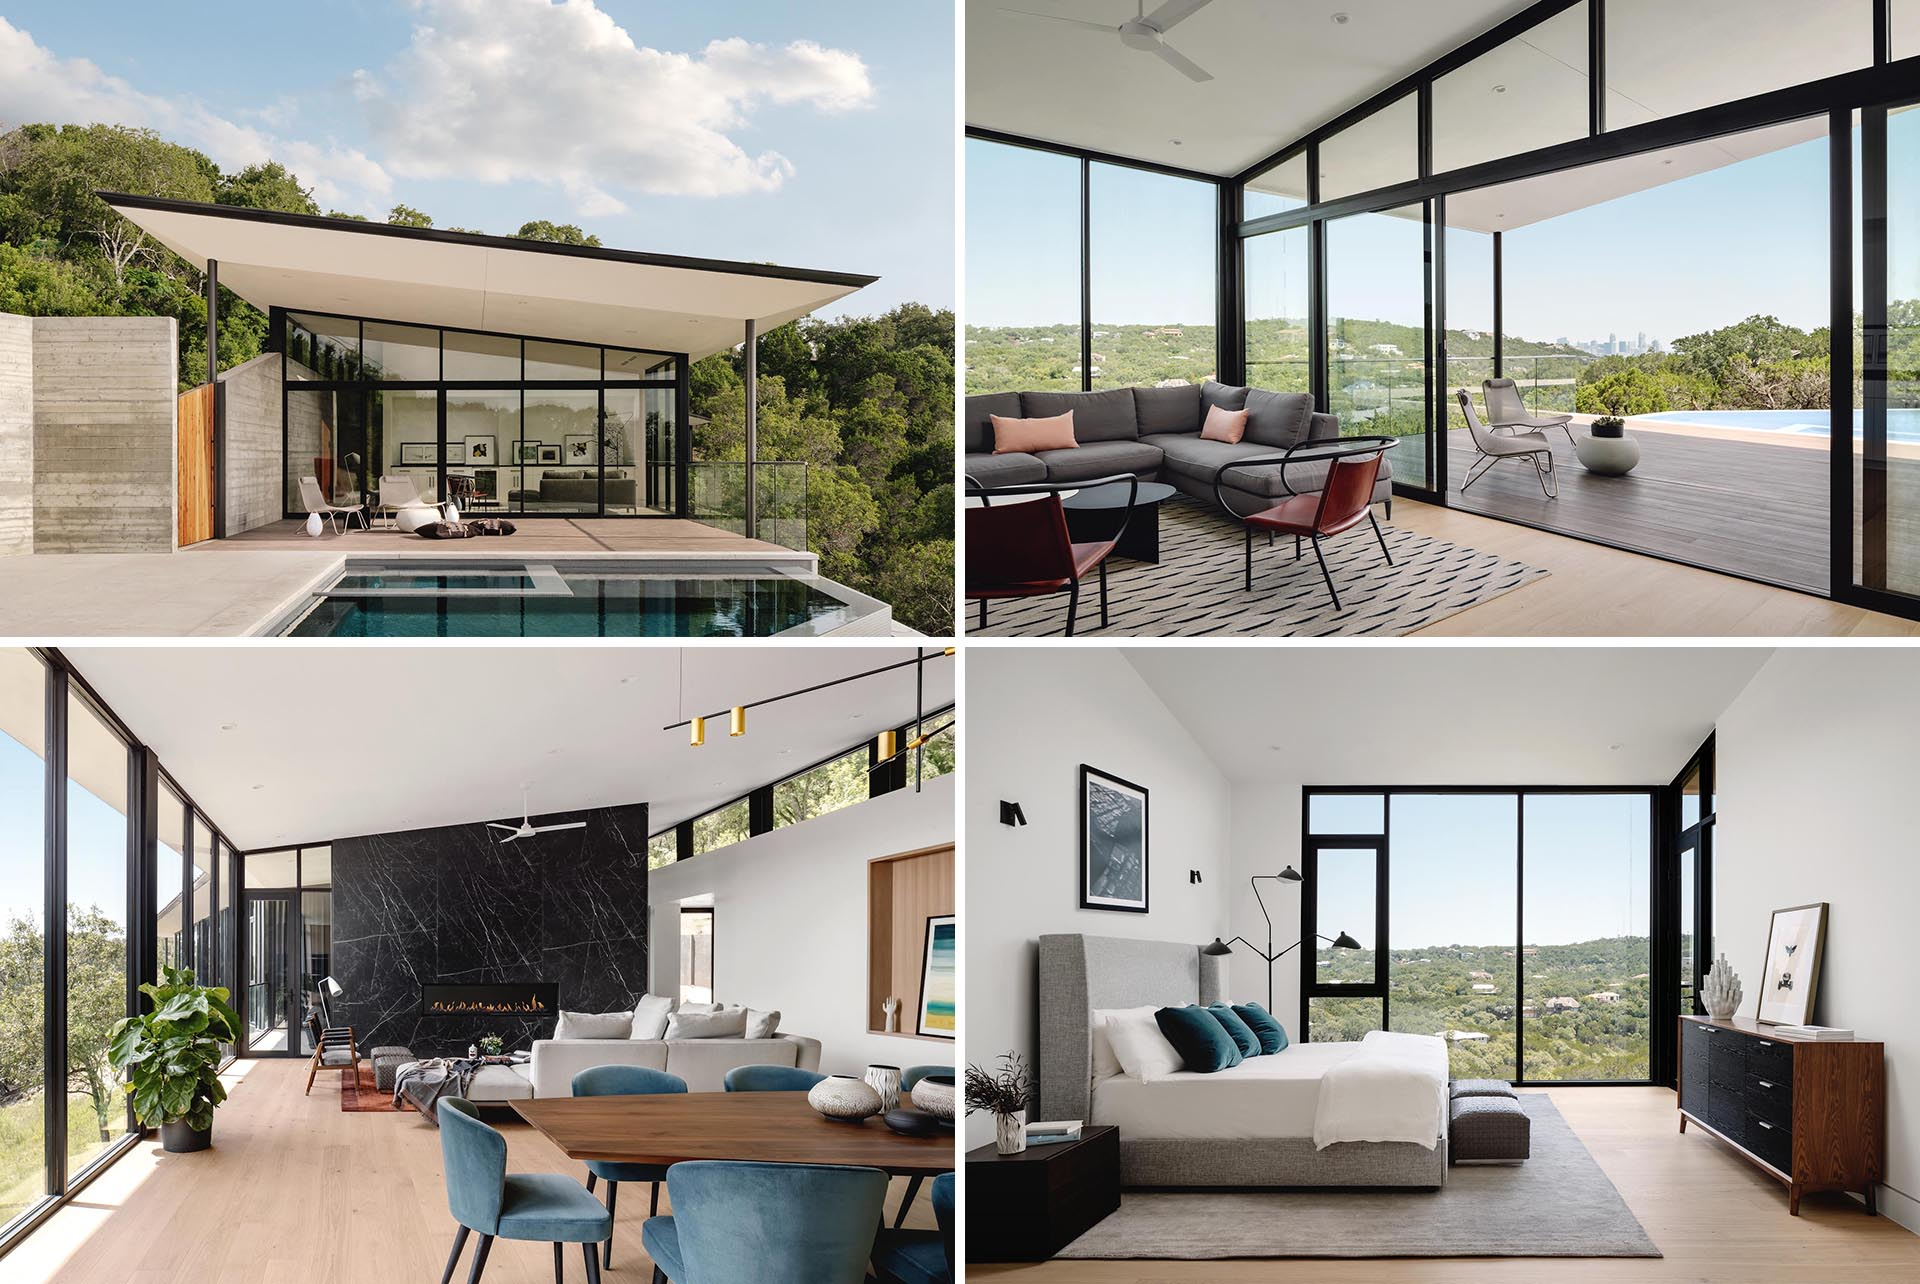 Ravel Architecture has completed a modern home in Austin, Texas, that's been designed with a boomerang-inspired shape and plenty of windows.